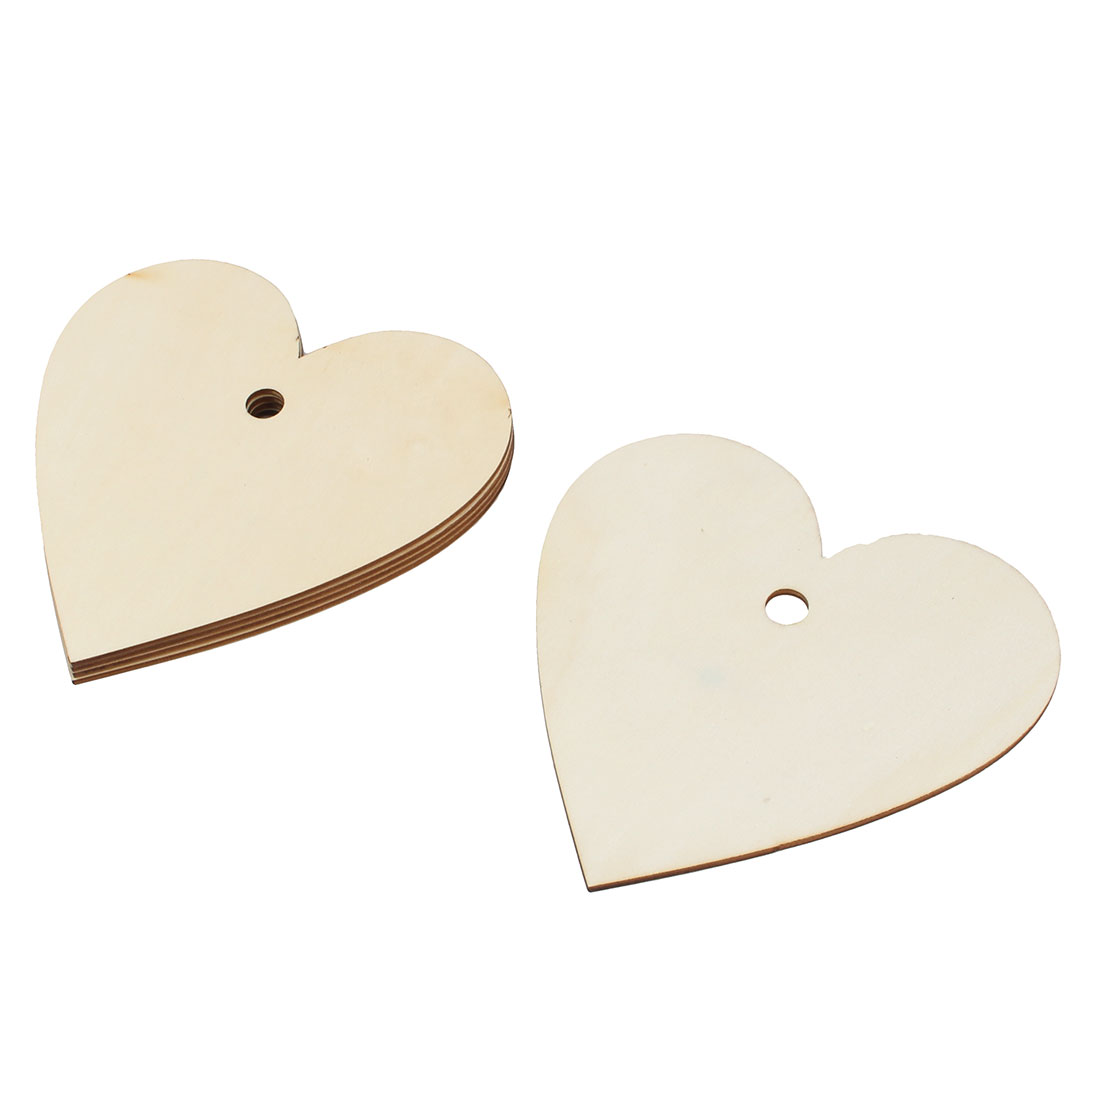 Wooden Love Heart Shaped Wedding DIY Craft Accessories Beige 150mm x 150mm 5 Pcs